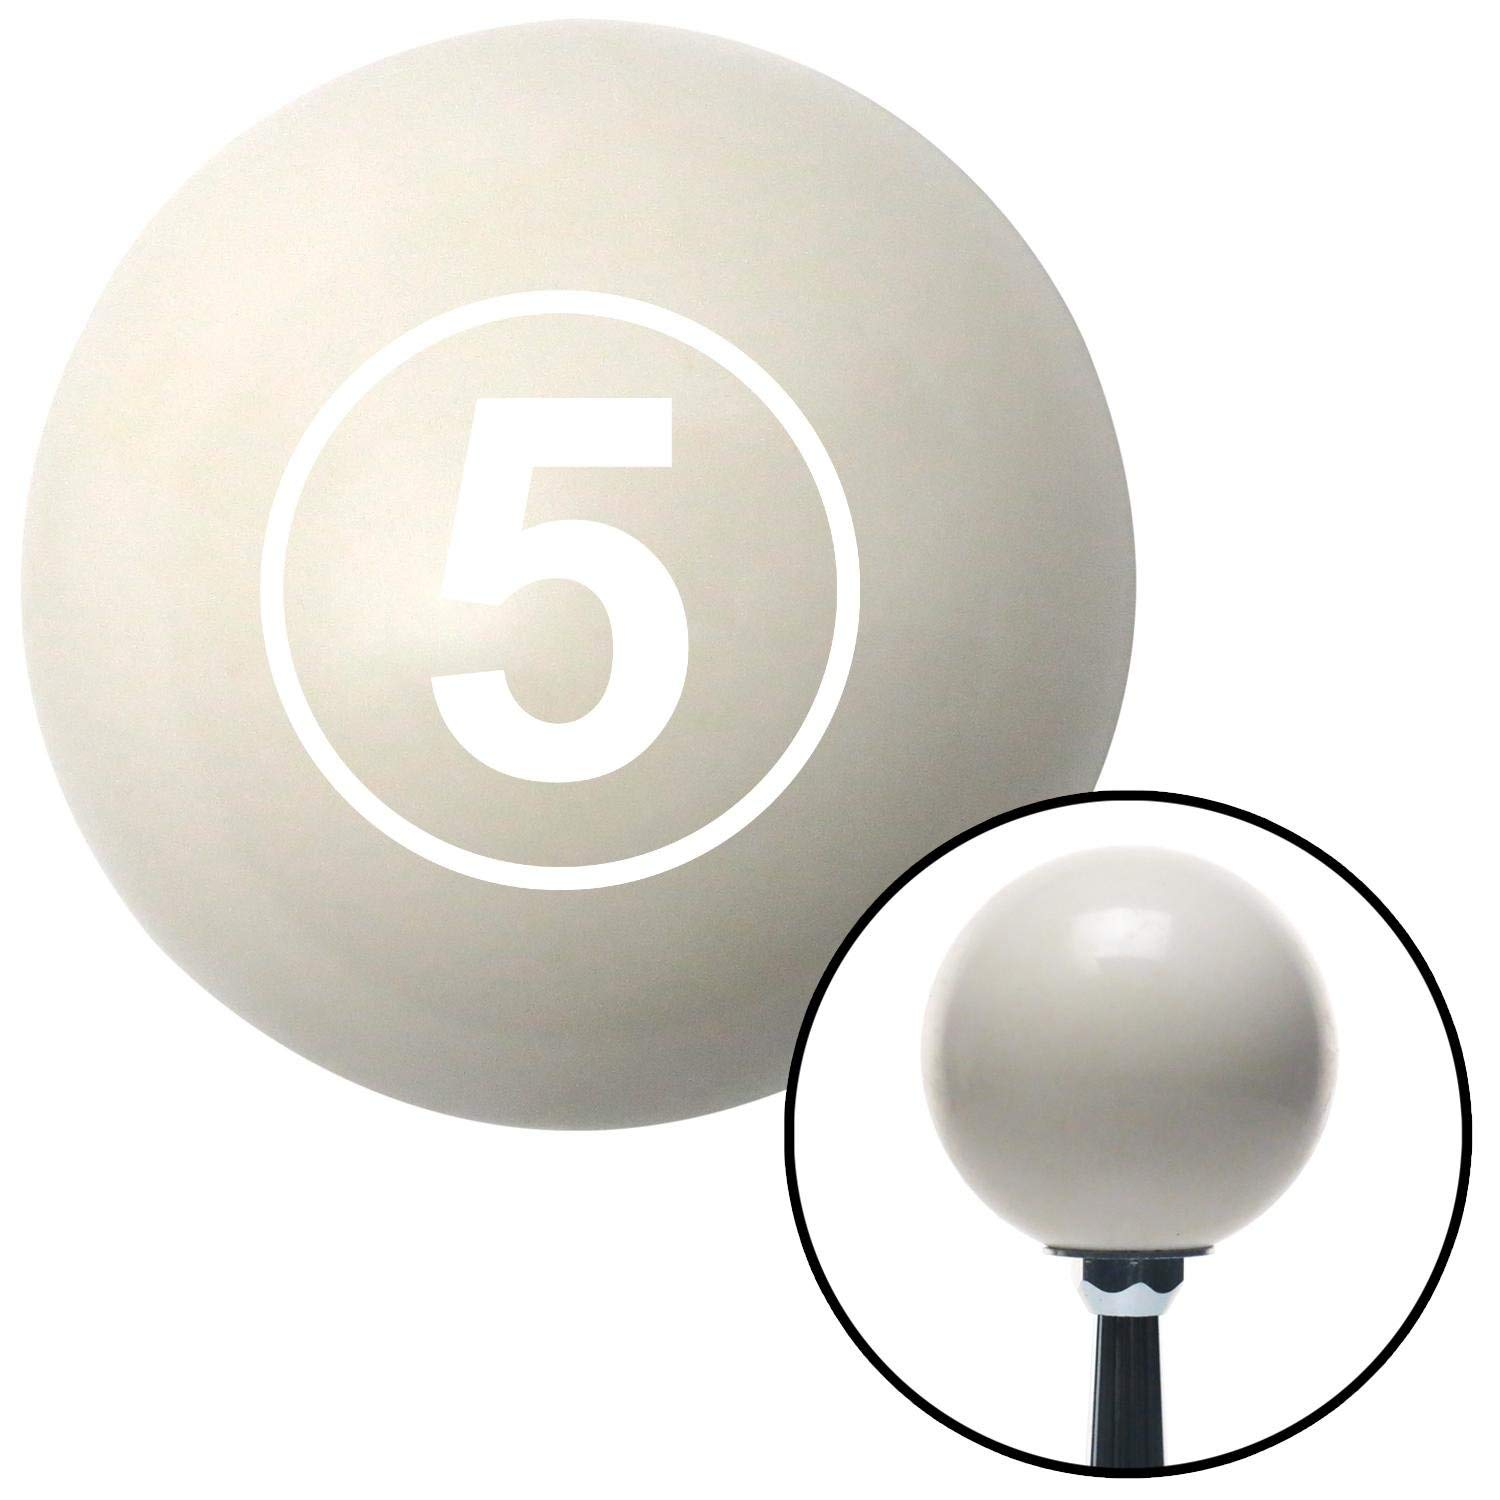 American Shifter 30310 Ivory Shift Knob with 16mm x 1.5 Insert White Ball 5